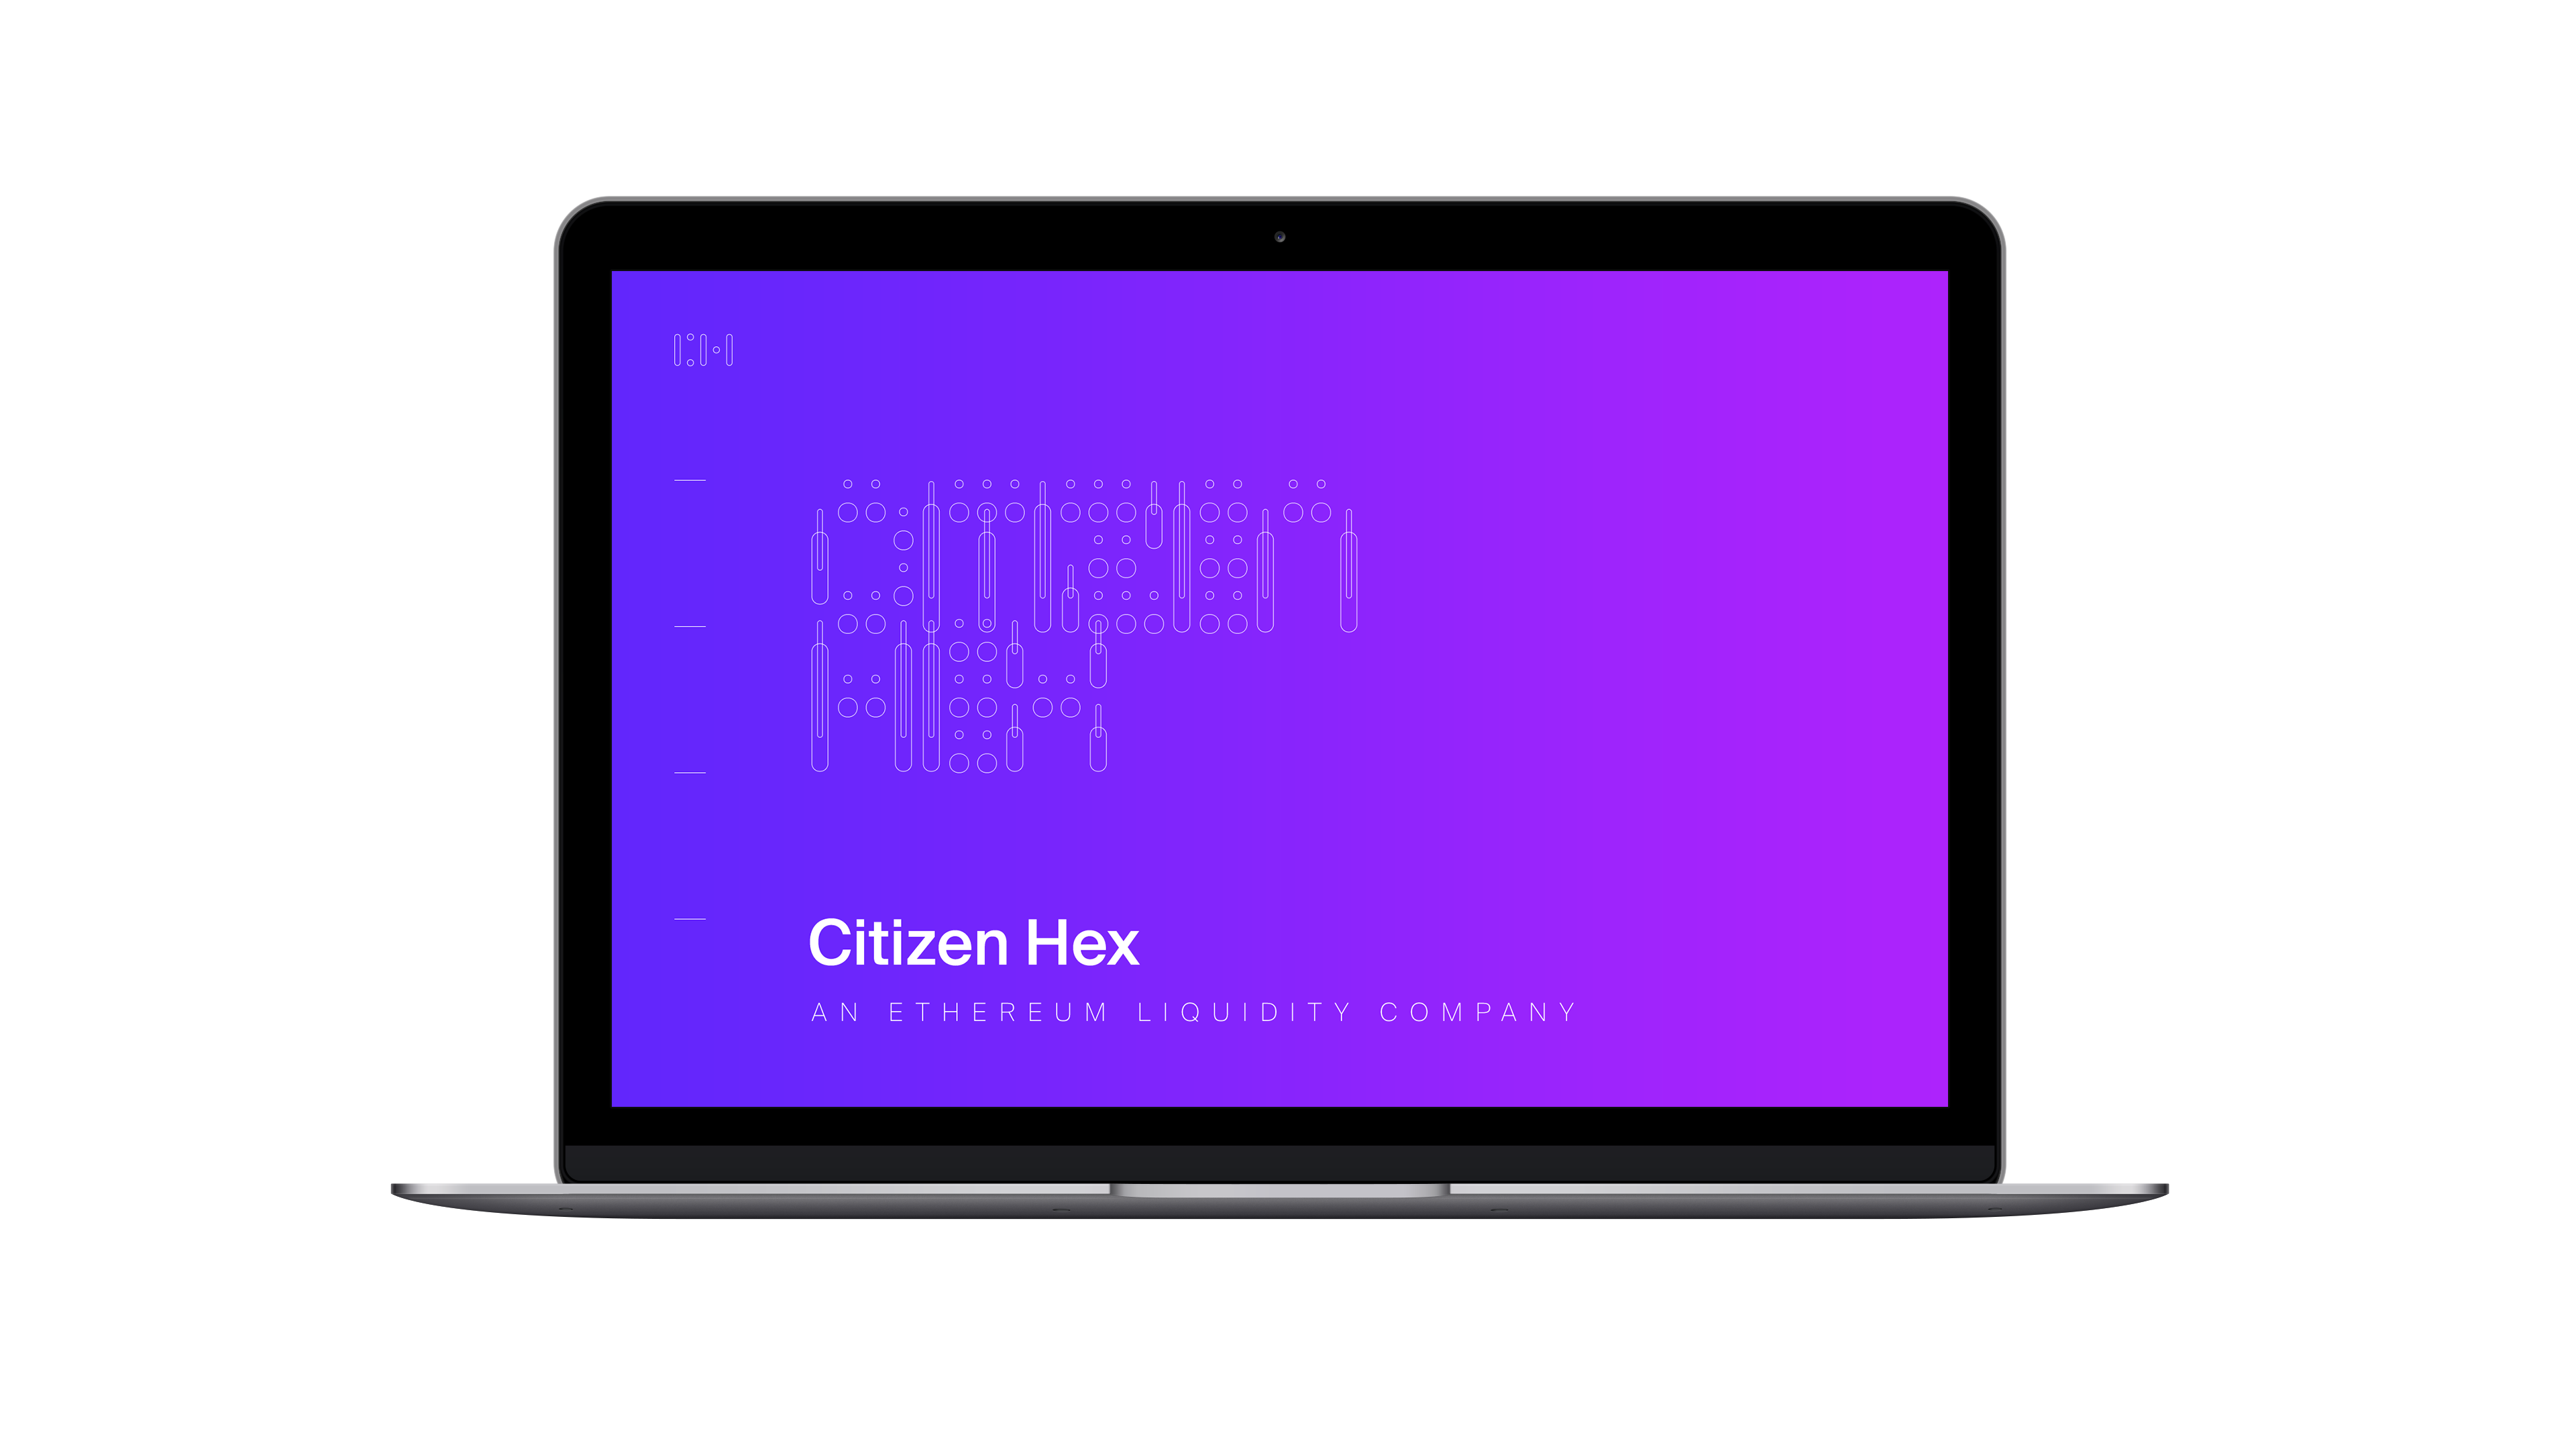 Citizen Hex - The Codeine Design